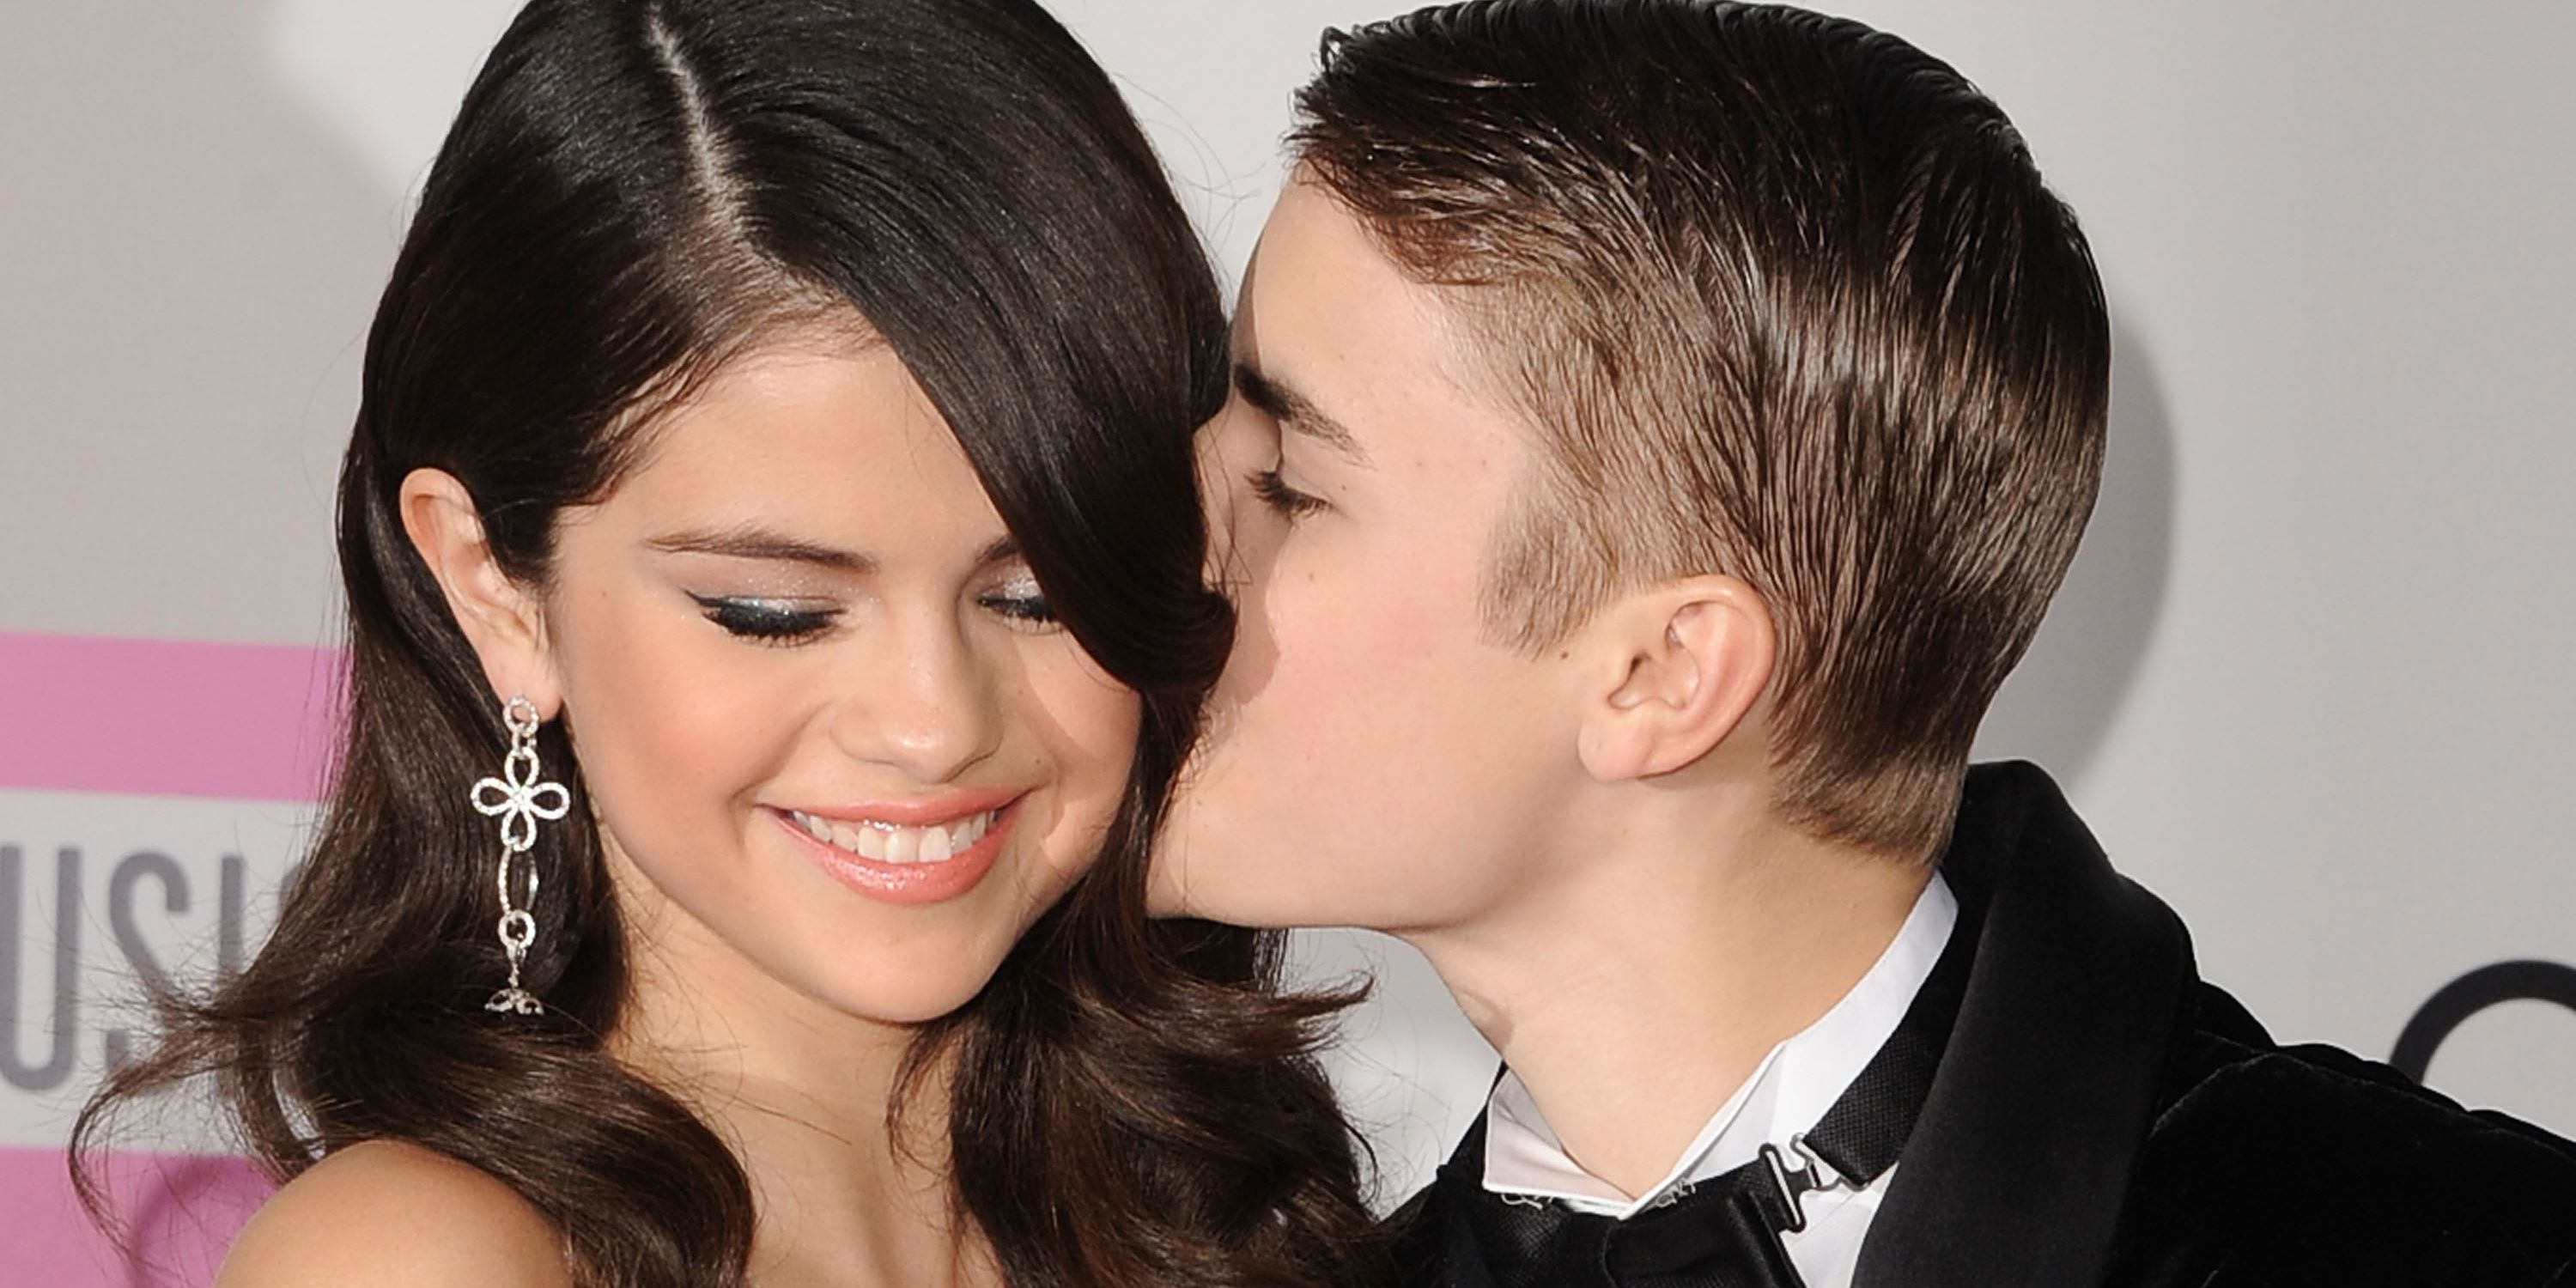 Kissing games dating justin bieber